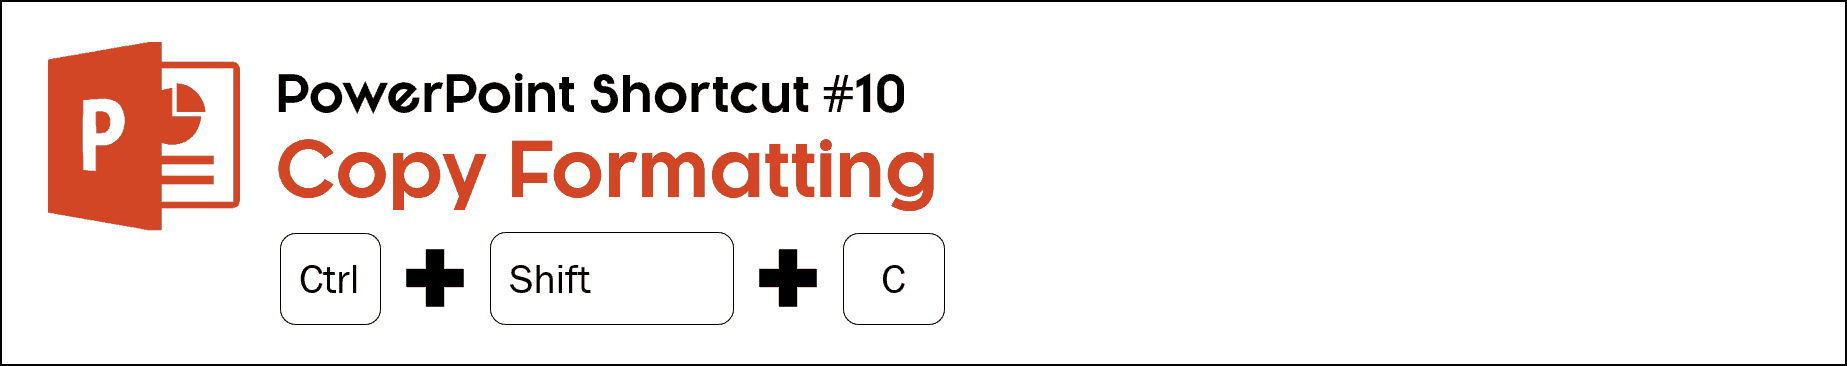 To copy an objects formatting in PowerPoint, select the object and hit control plus shift plus c on your keyboard